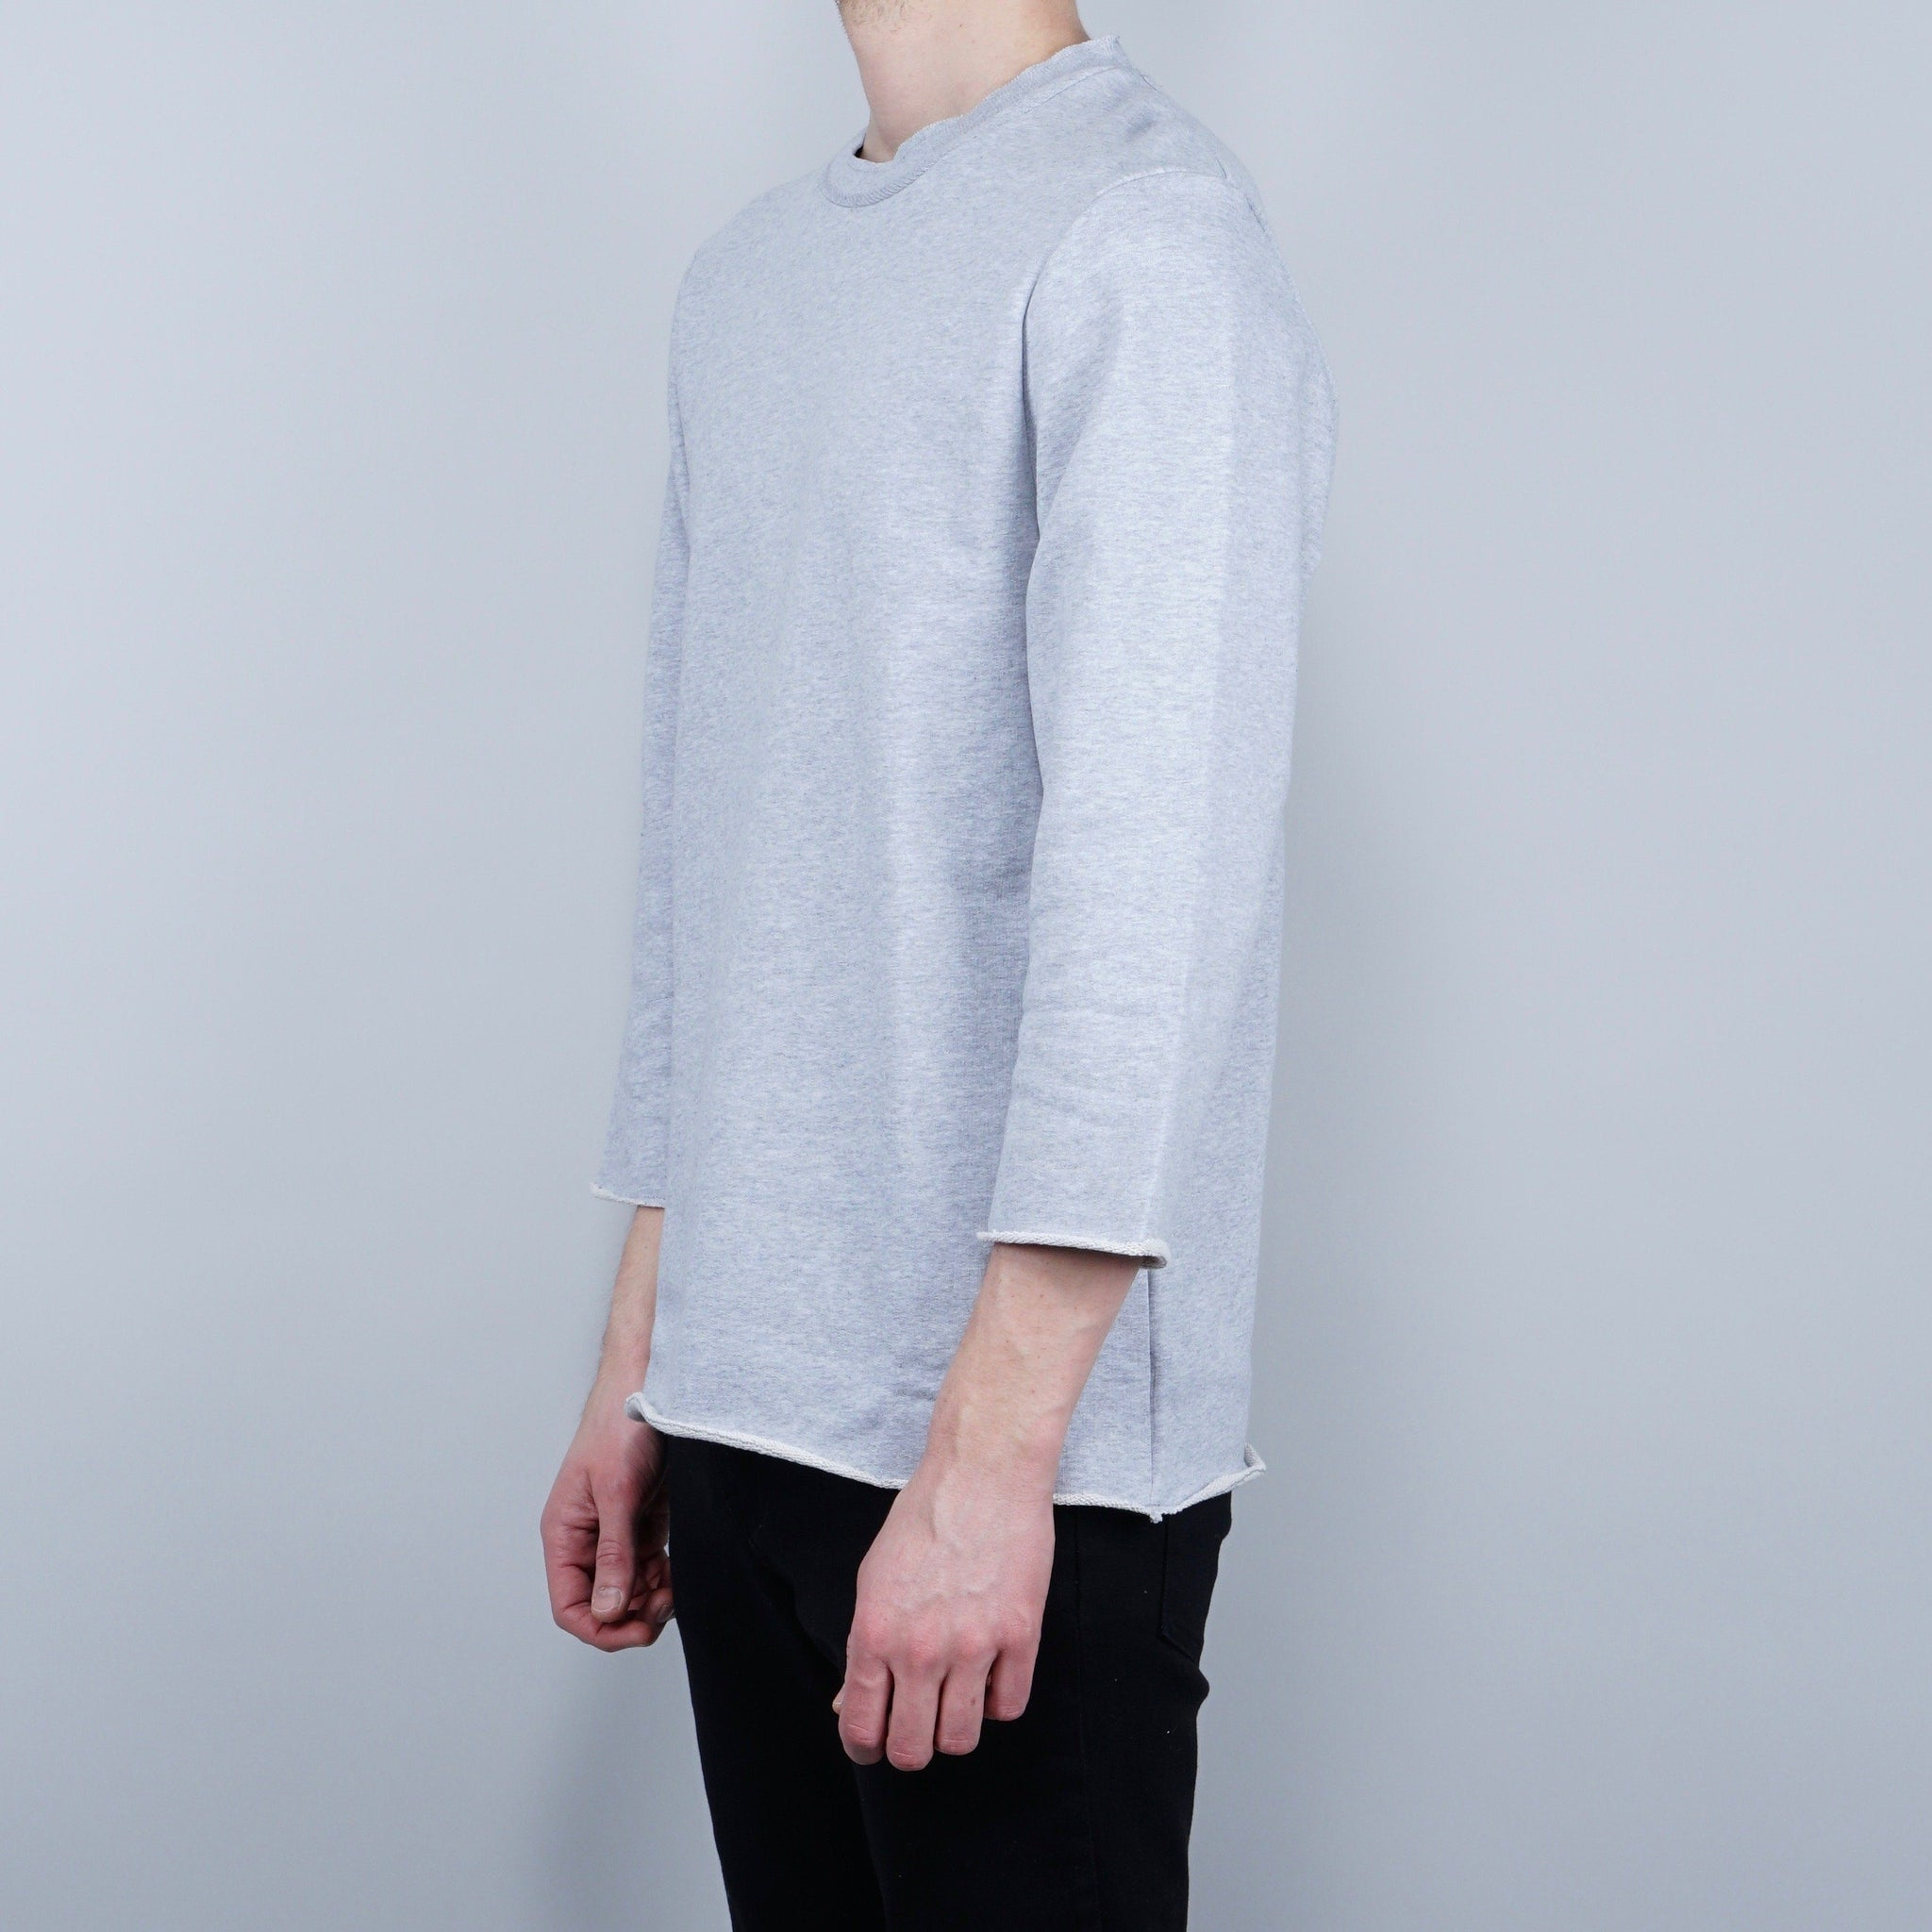 Coltesse Filix Sweater - Gray